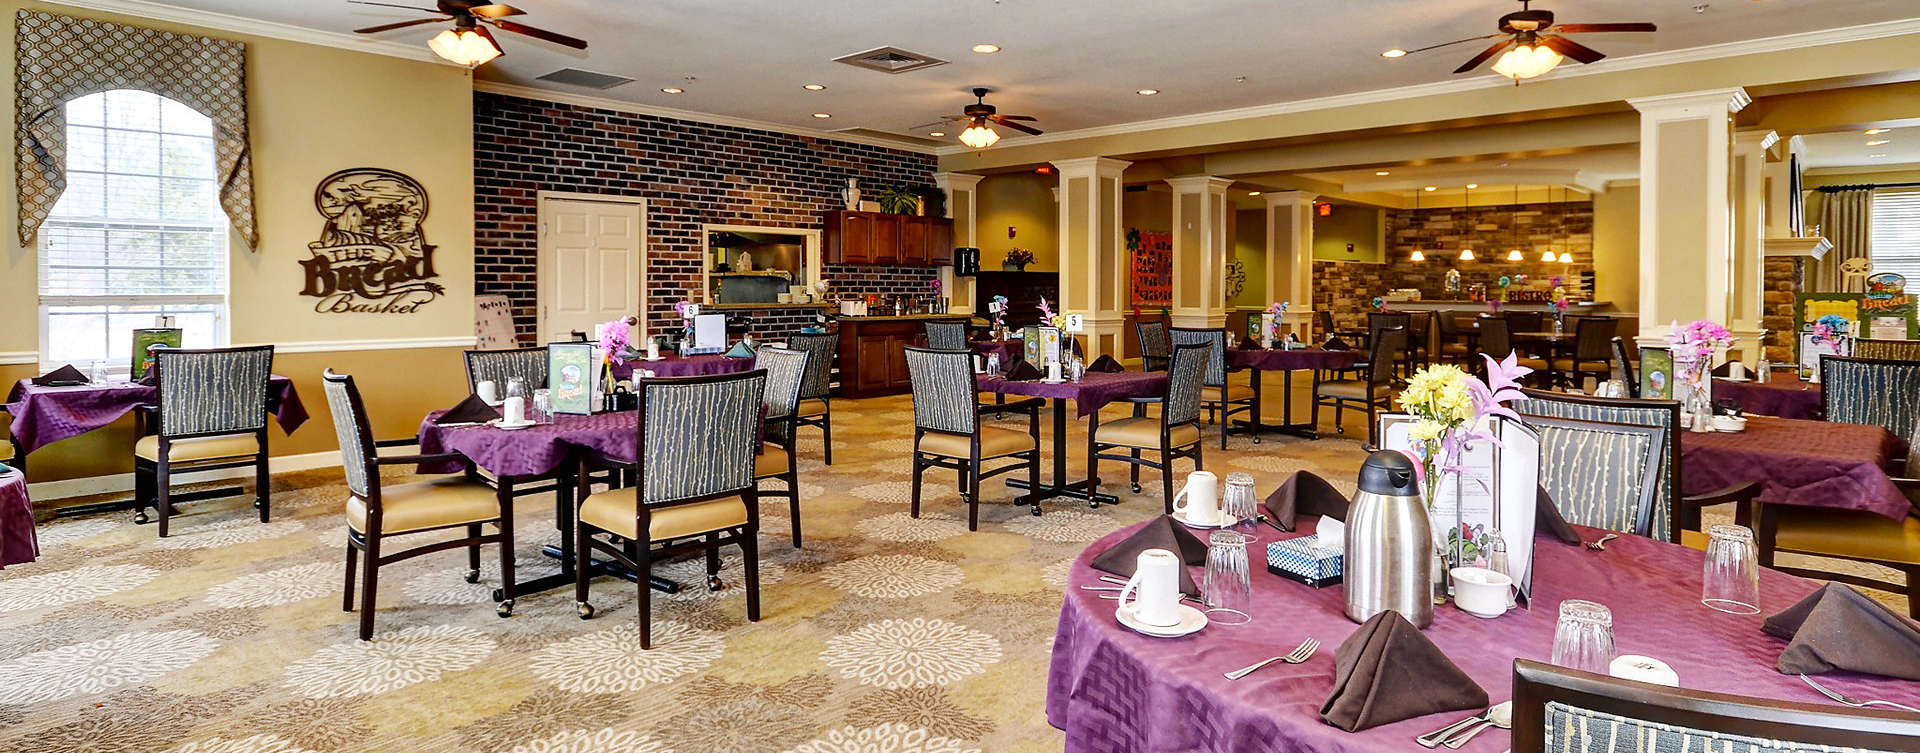 Enjoy restaurant -style meals served three times a day in our dining room at Bickford of Crystal Lake